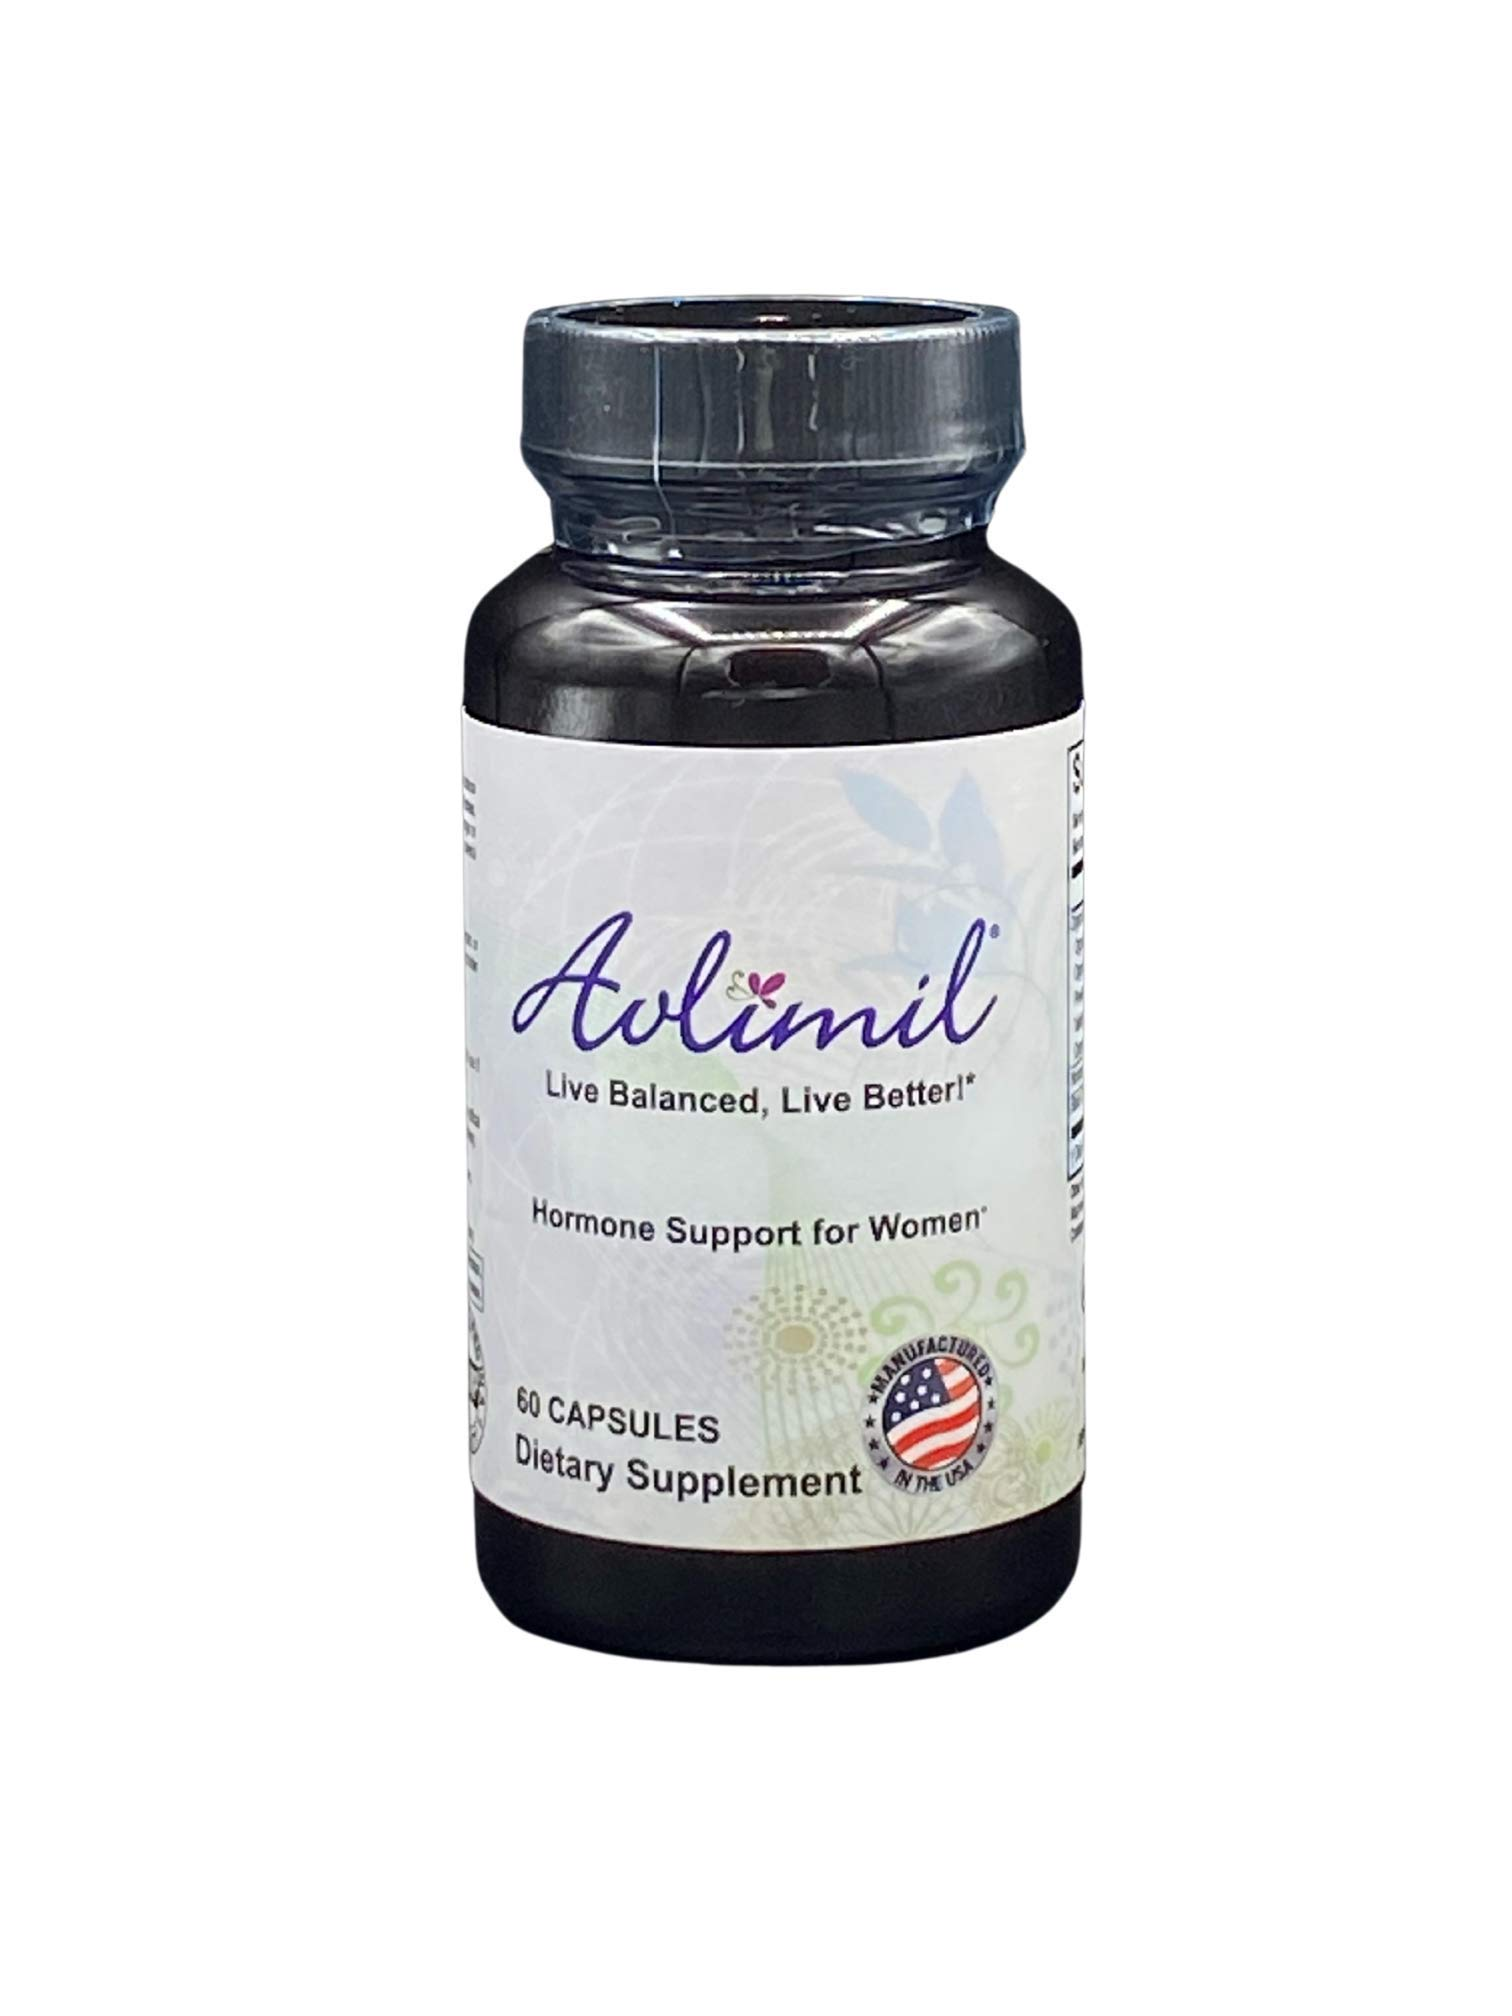 Avlimil® Hormone Balance & Menopause Support   Mood Swings, Hot Flashes, Night Sweats and Irritability - Isoflavones, Black Cohosh, Raspberry, Valerian, Sage, Red Clover, Lemon Balm - 1-Month